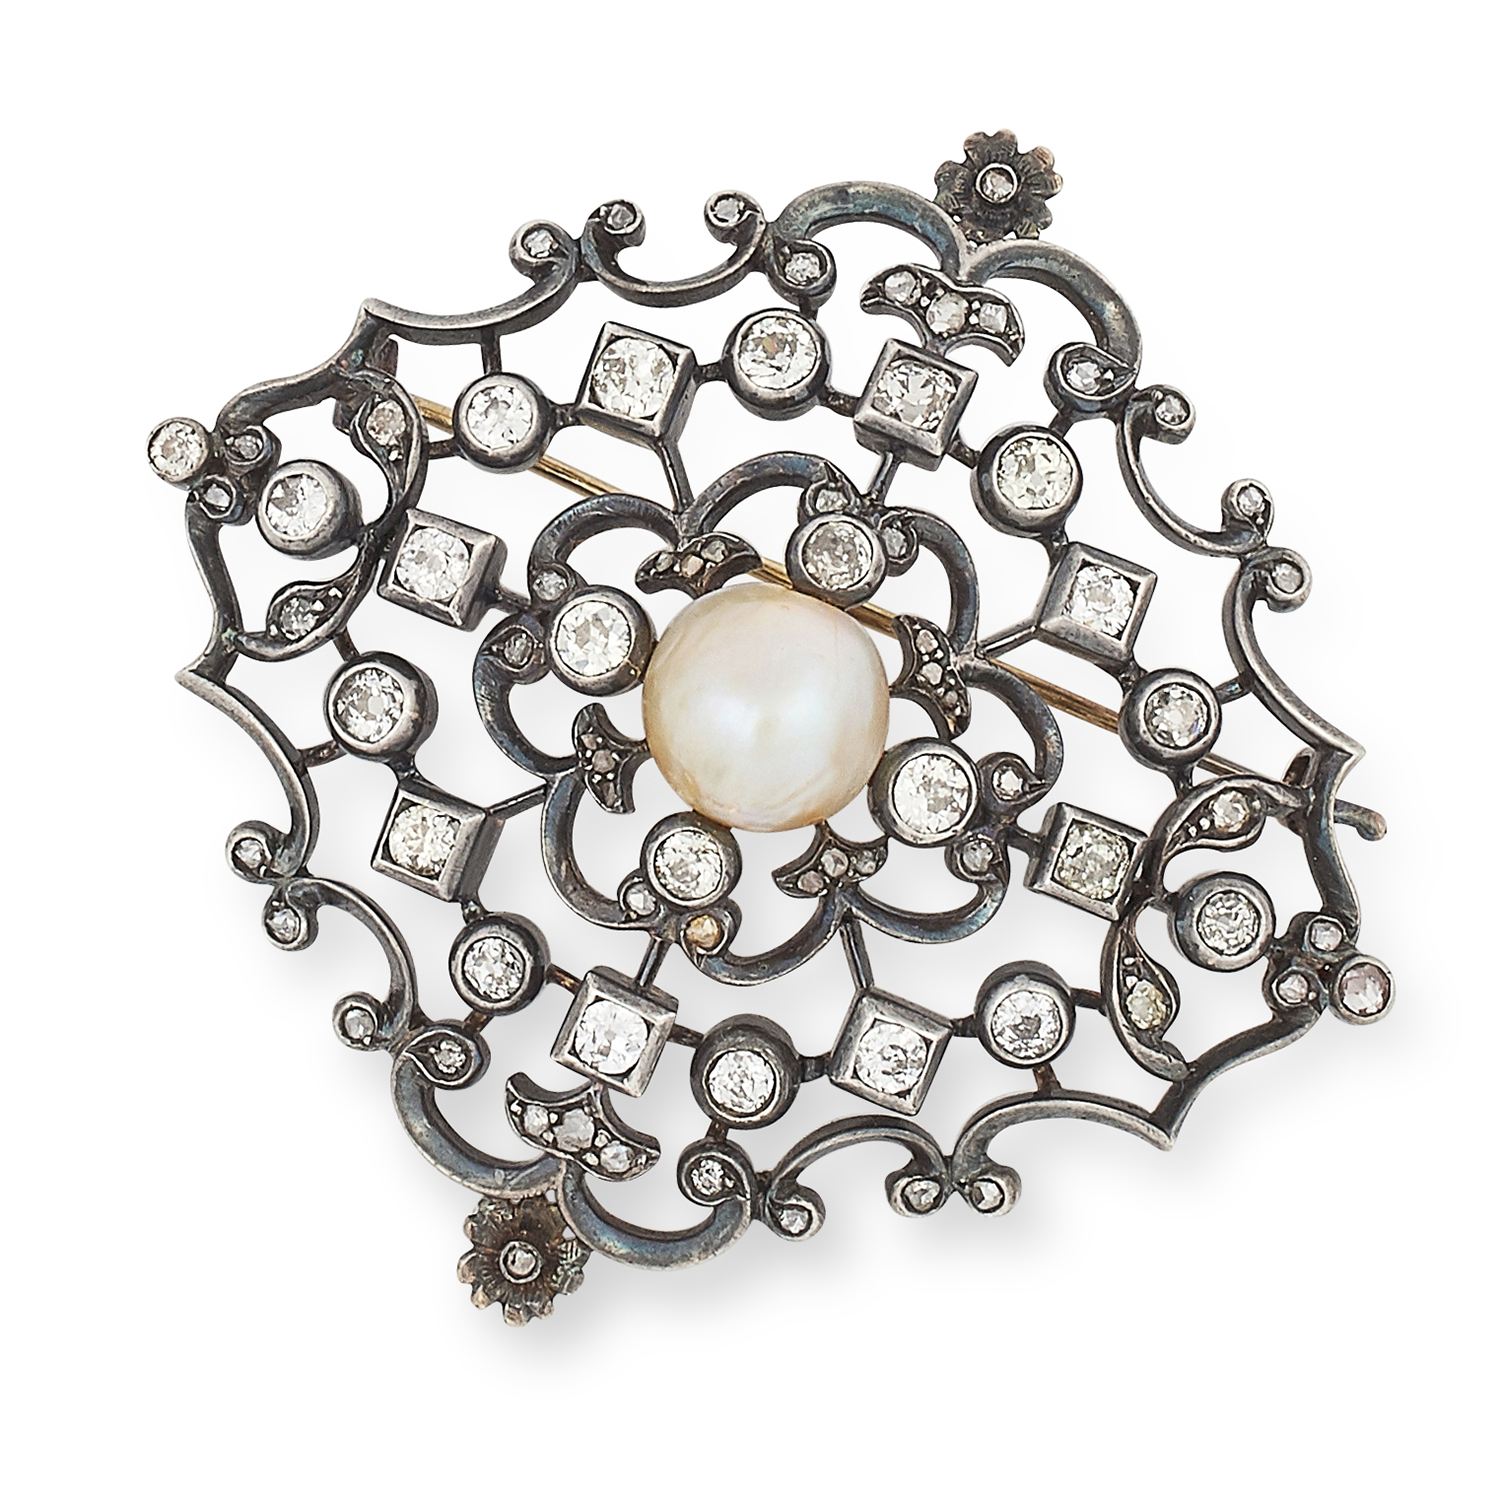 Los 50 - ANTIQUE NATURAL PEARL AND DIAMOND BROOCH comprising of a pearl in an open border set with old and